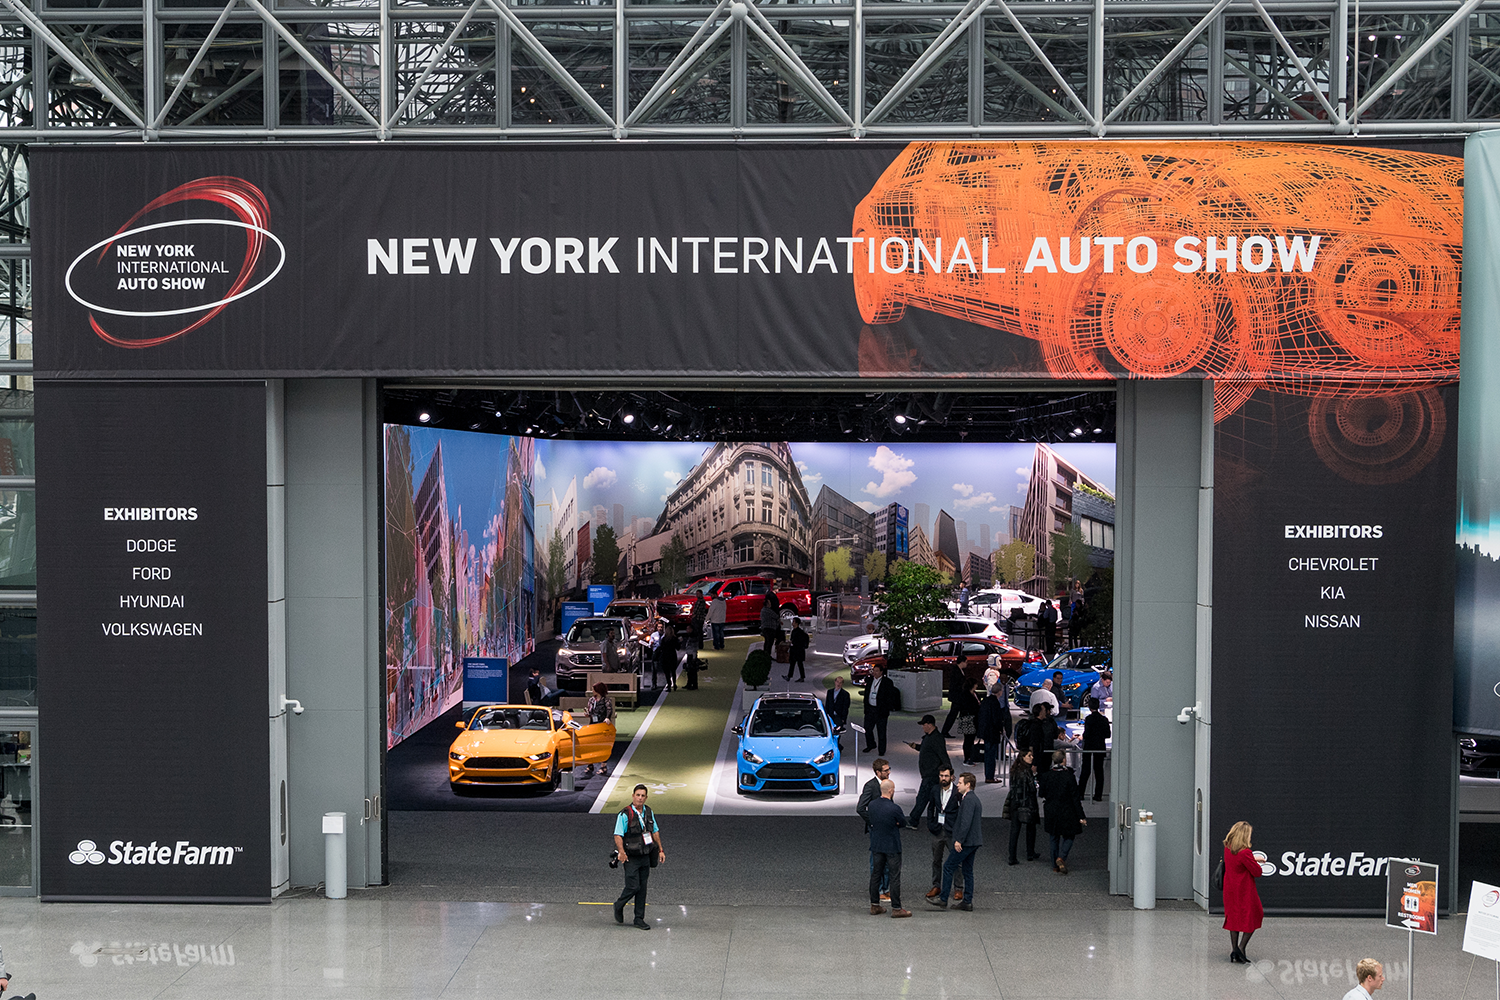 The entrance to an auto show in New York City